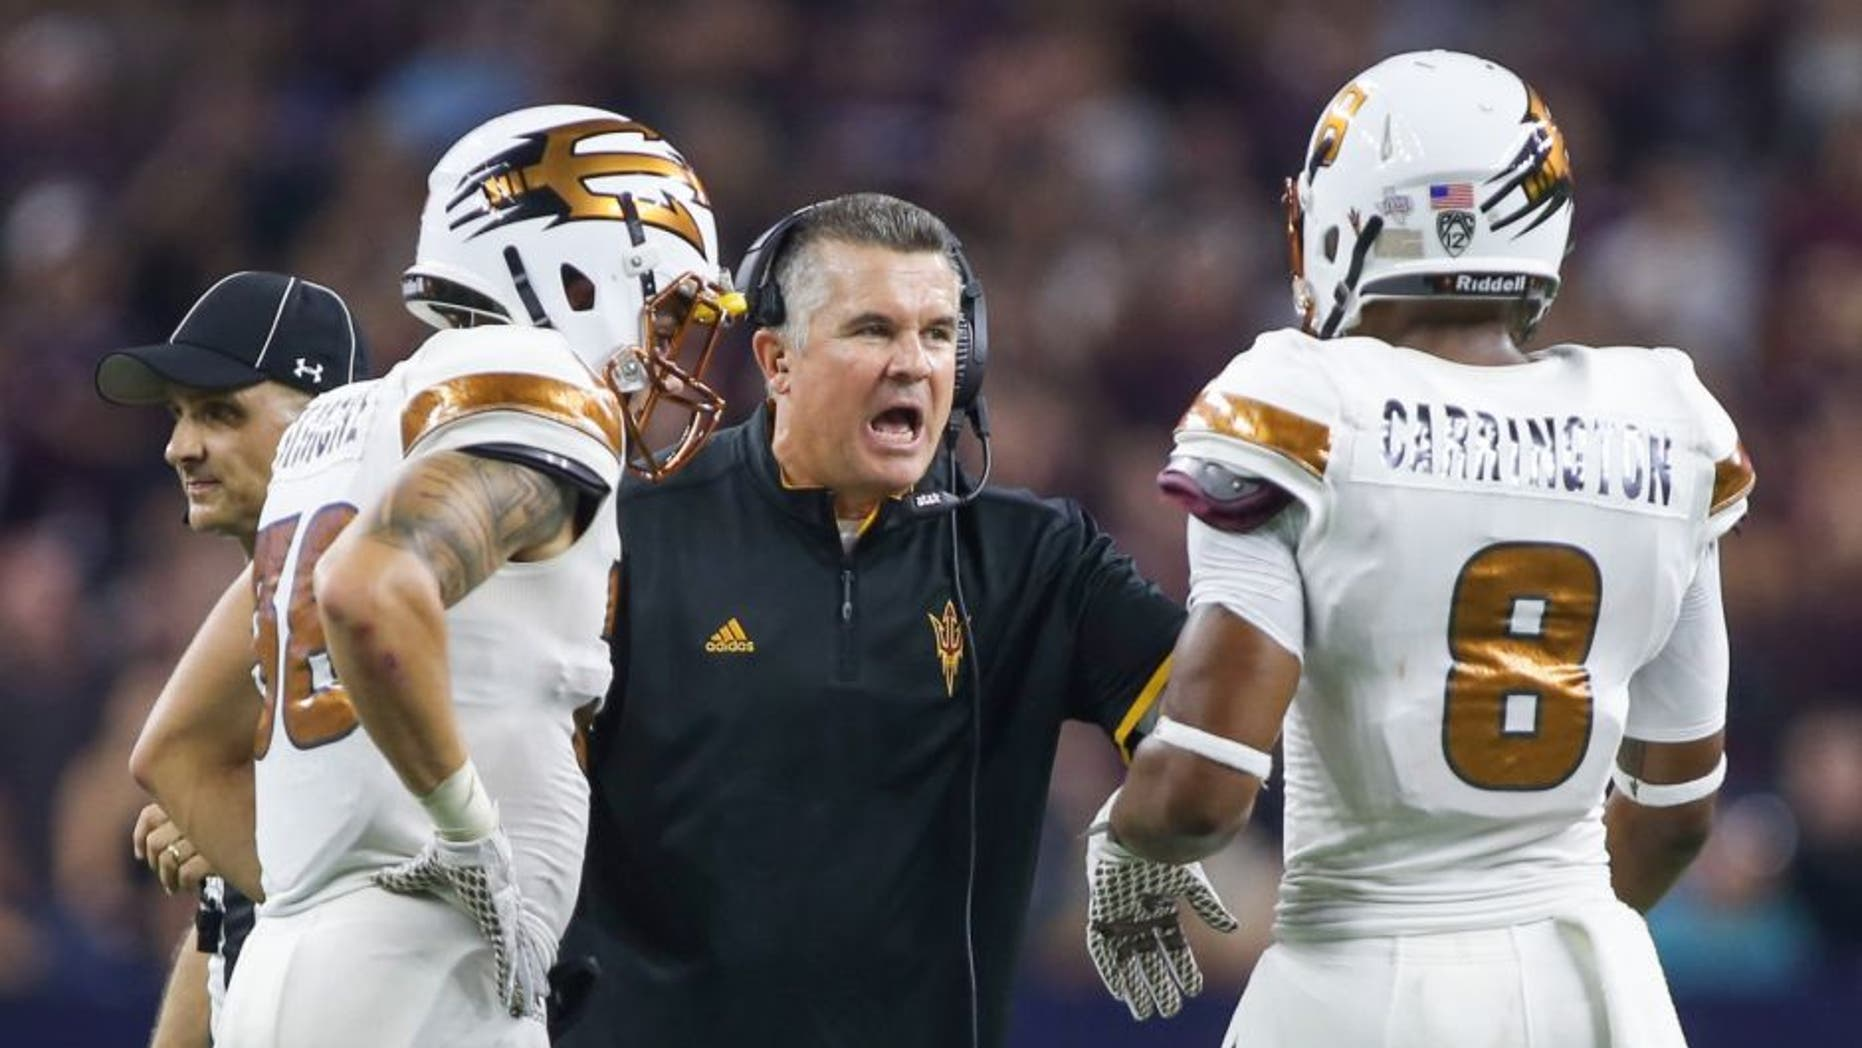 Sep 5, 2015; Houston, TX, USA; Arizona State Sun Devils head coach Todd Graham talks with players during the game against the Texas A&M Aggies at NRG Stadium. Mandatory Credit: Troy Taormina-USA TODAY Sports